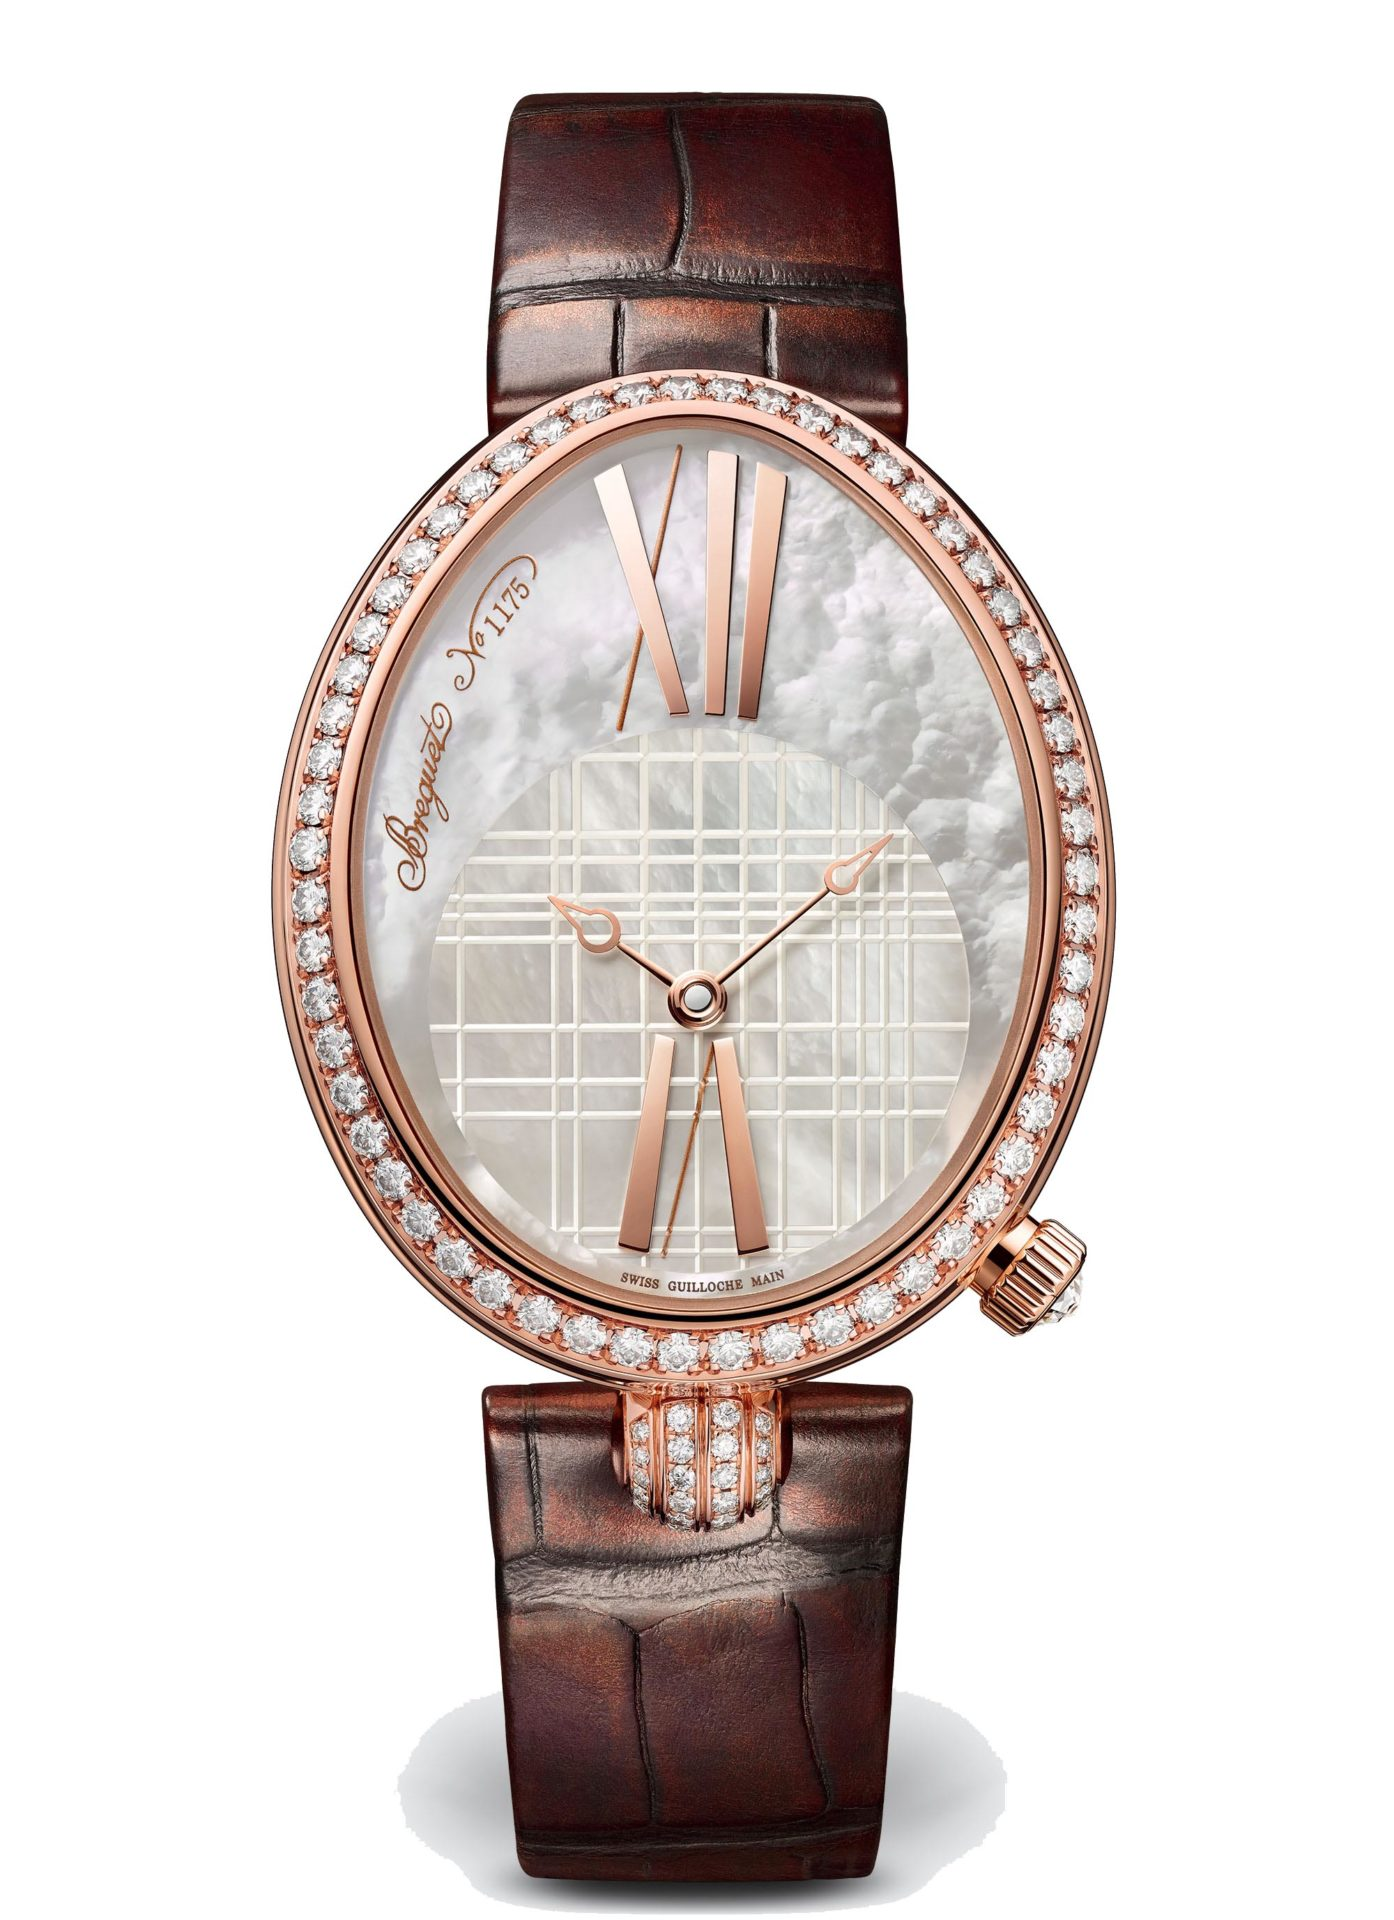 Breguet-Reine-de-Naples-8965-Hall-of-Time-8965br-5w-986-dd0d